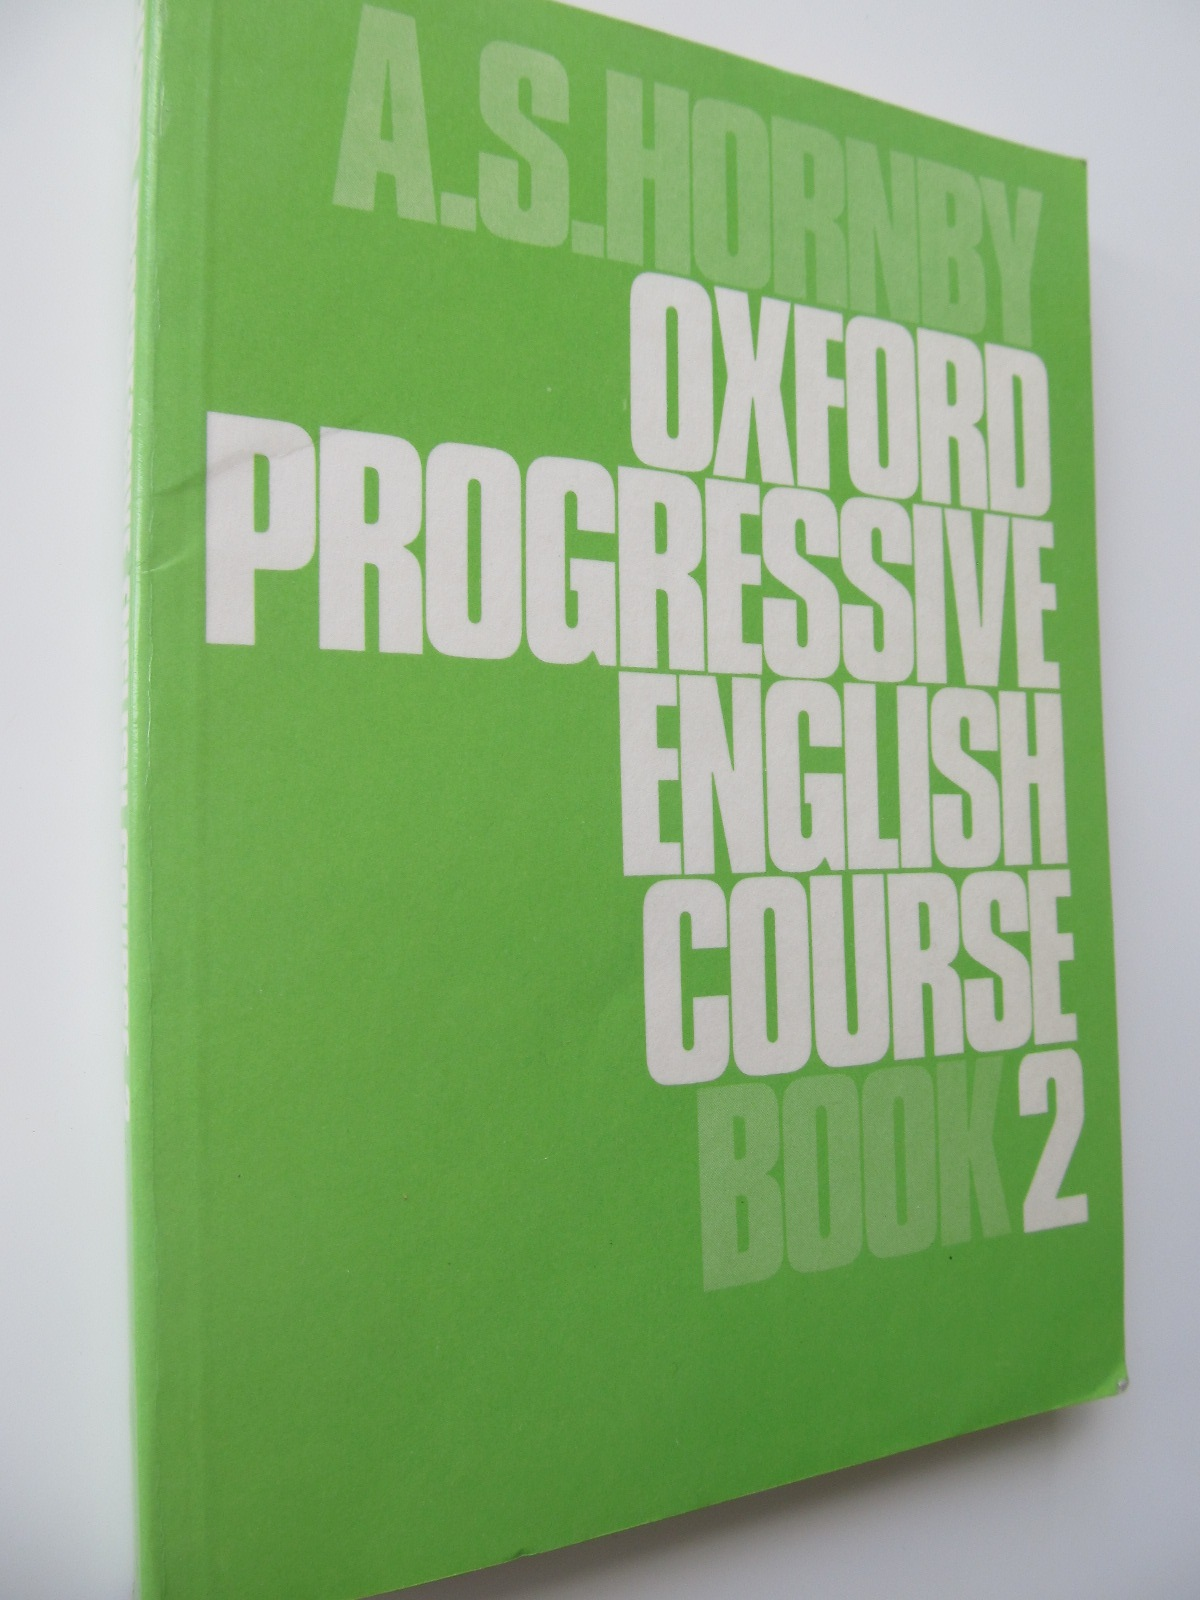 Oxford Progressive English Course 2 - A. S. Hornby | Detalii carte